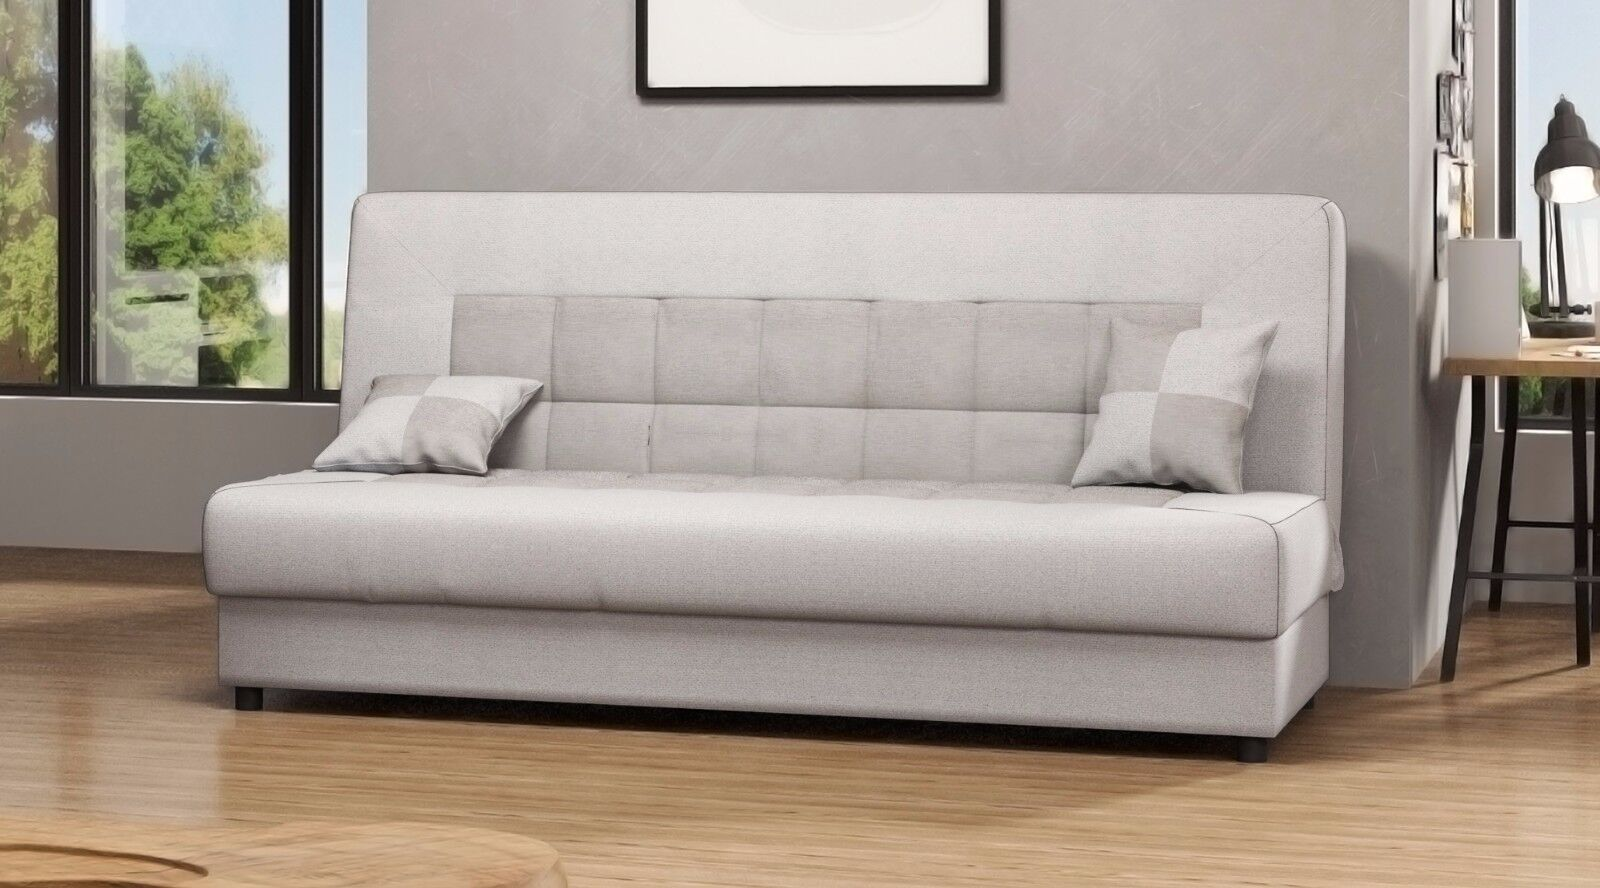 torino couch sofa 3sitzer mit kissen webstoff farbwahl schlaffunktion grau eur 209 00. Black Bedroom Furniture Sets. Home Design Ideas